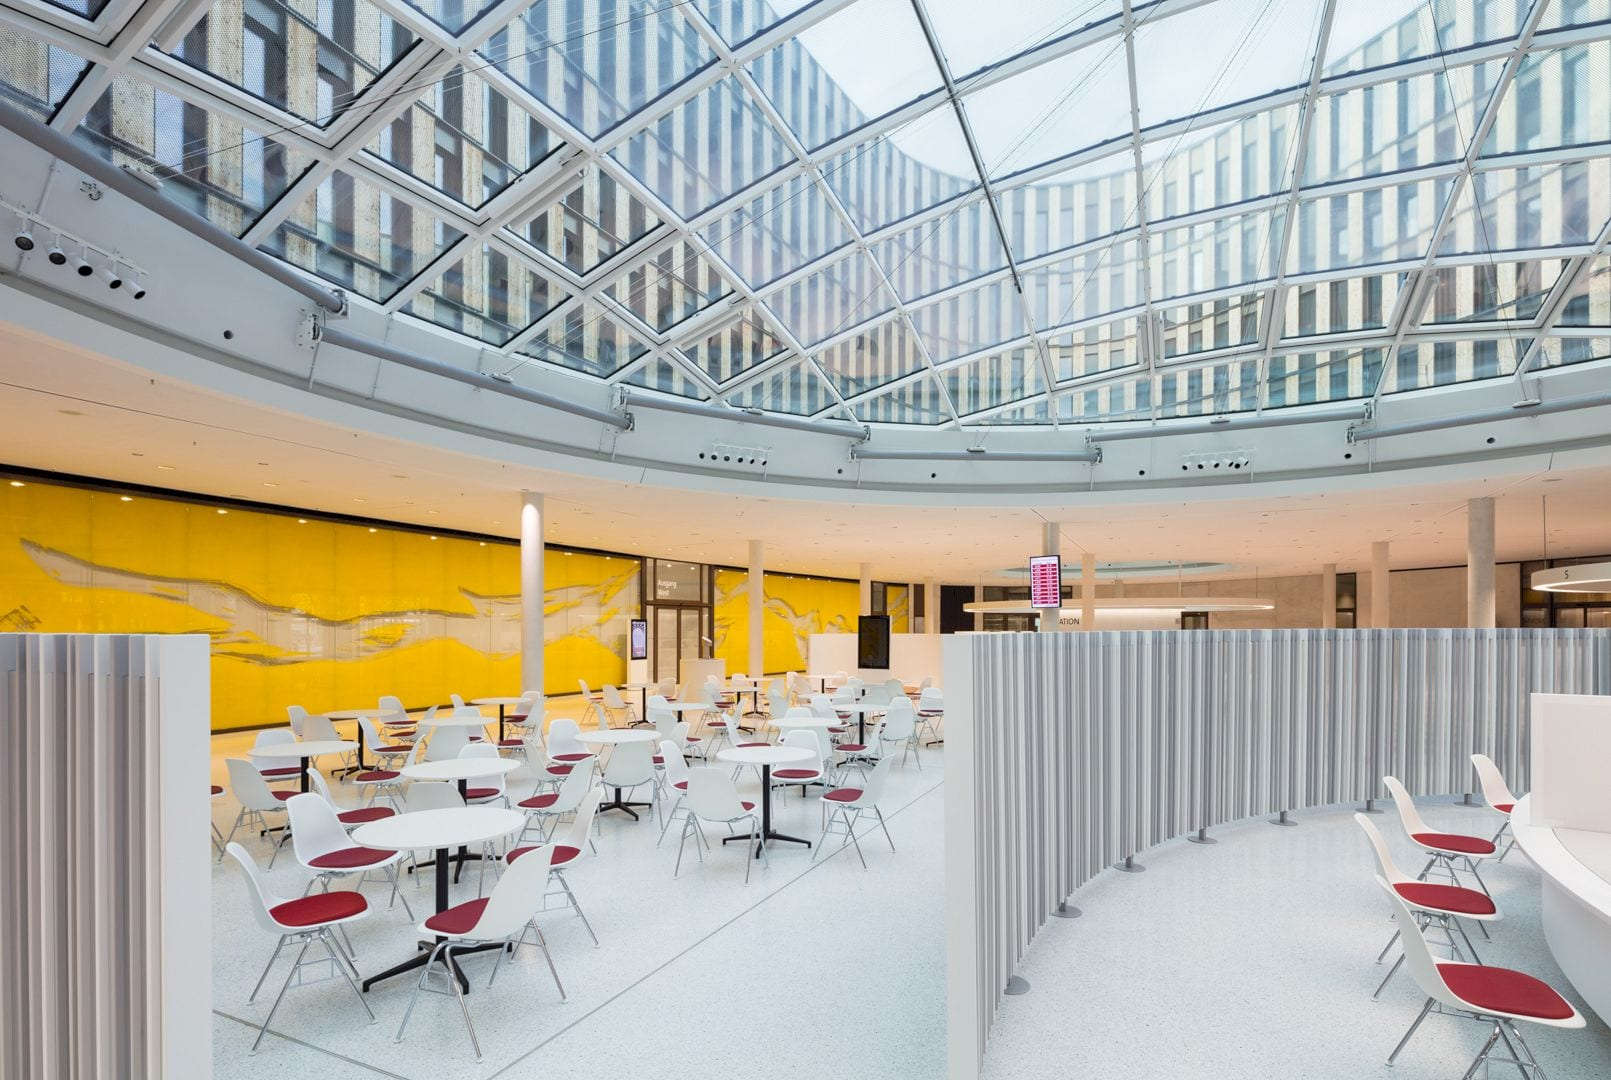 Freiburg Town Hall By Ingenhoven Architects 15